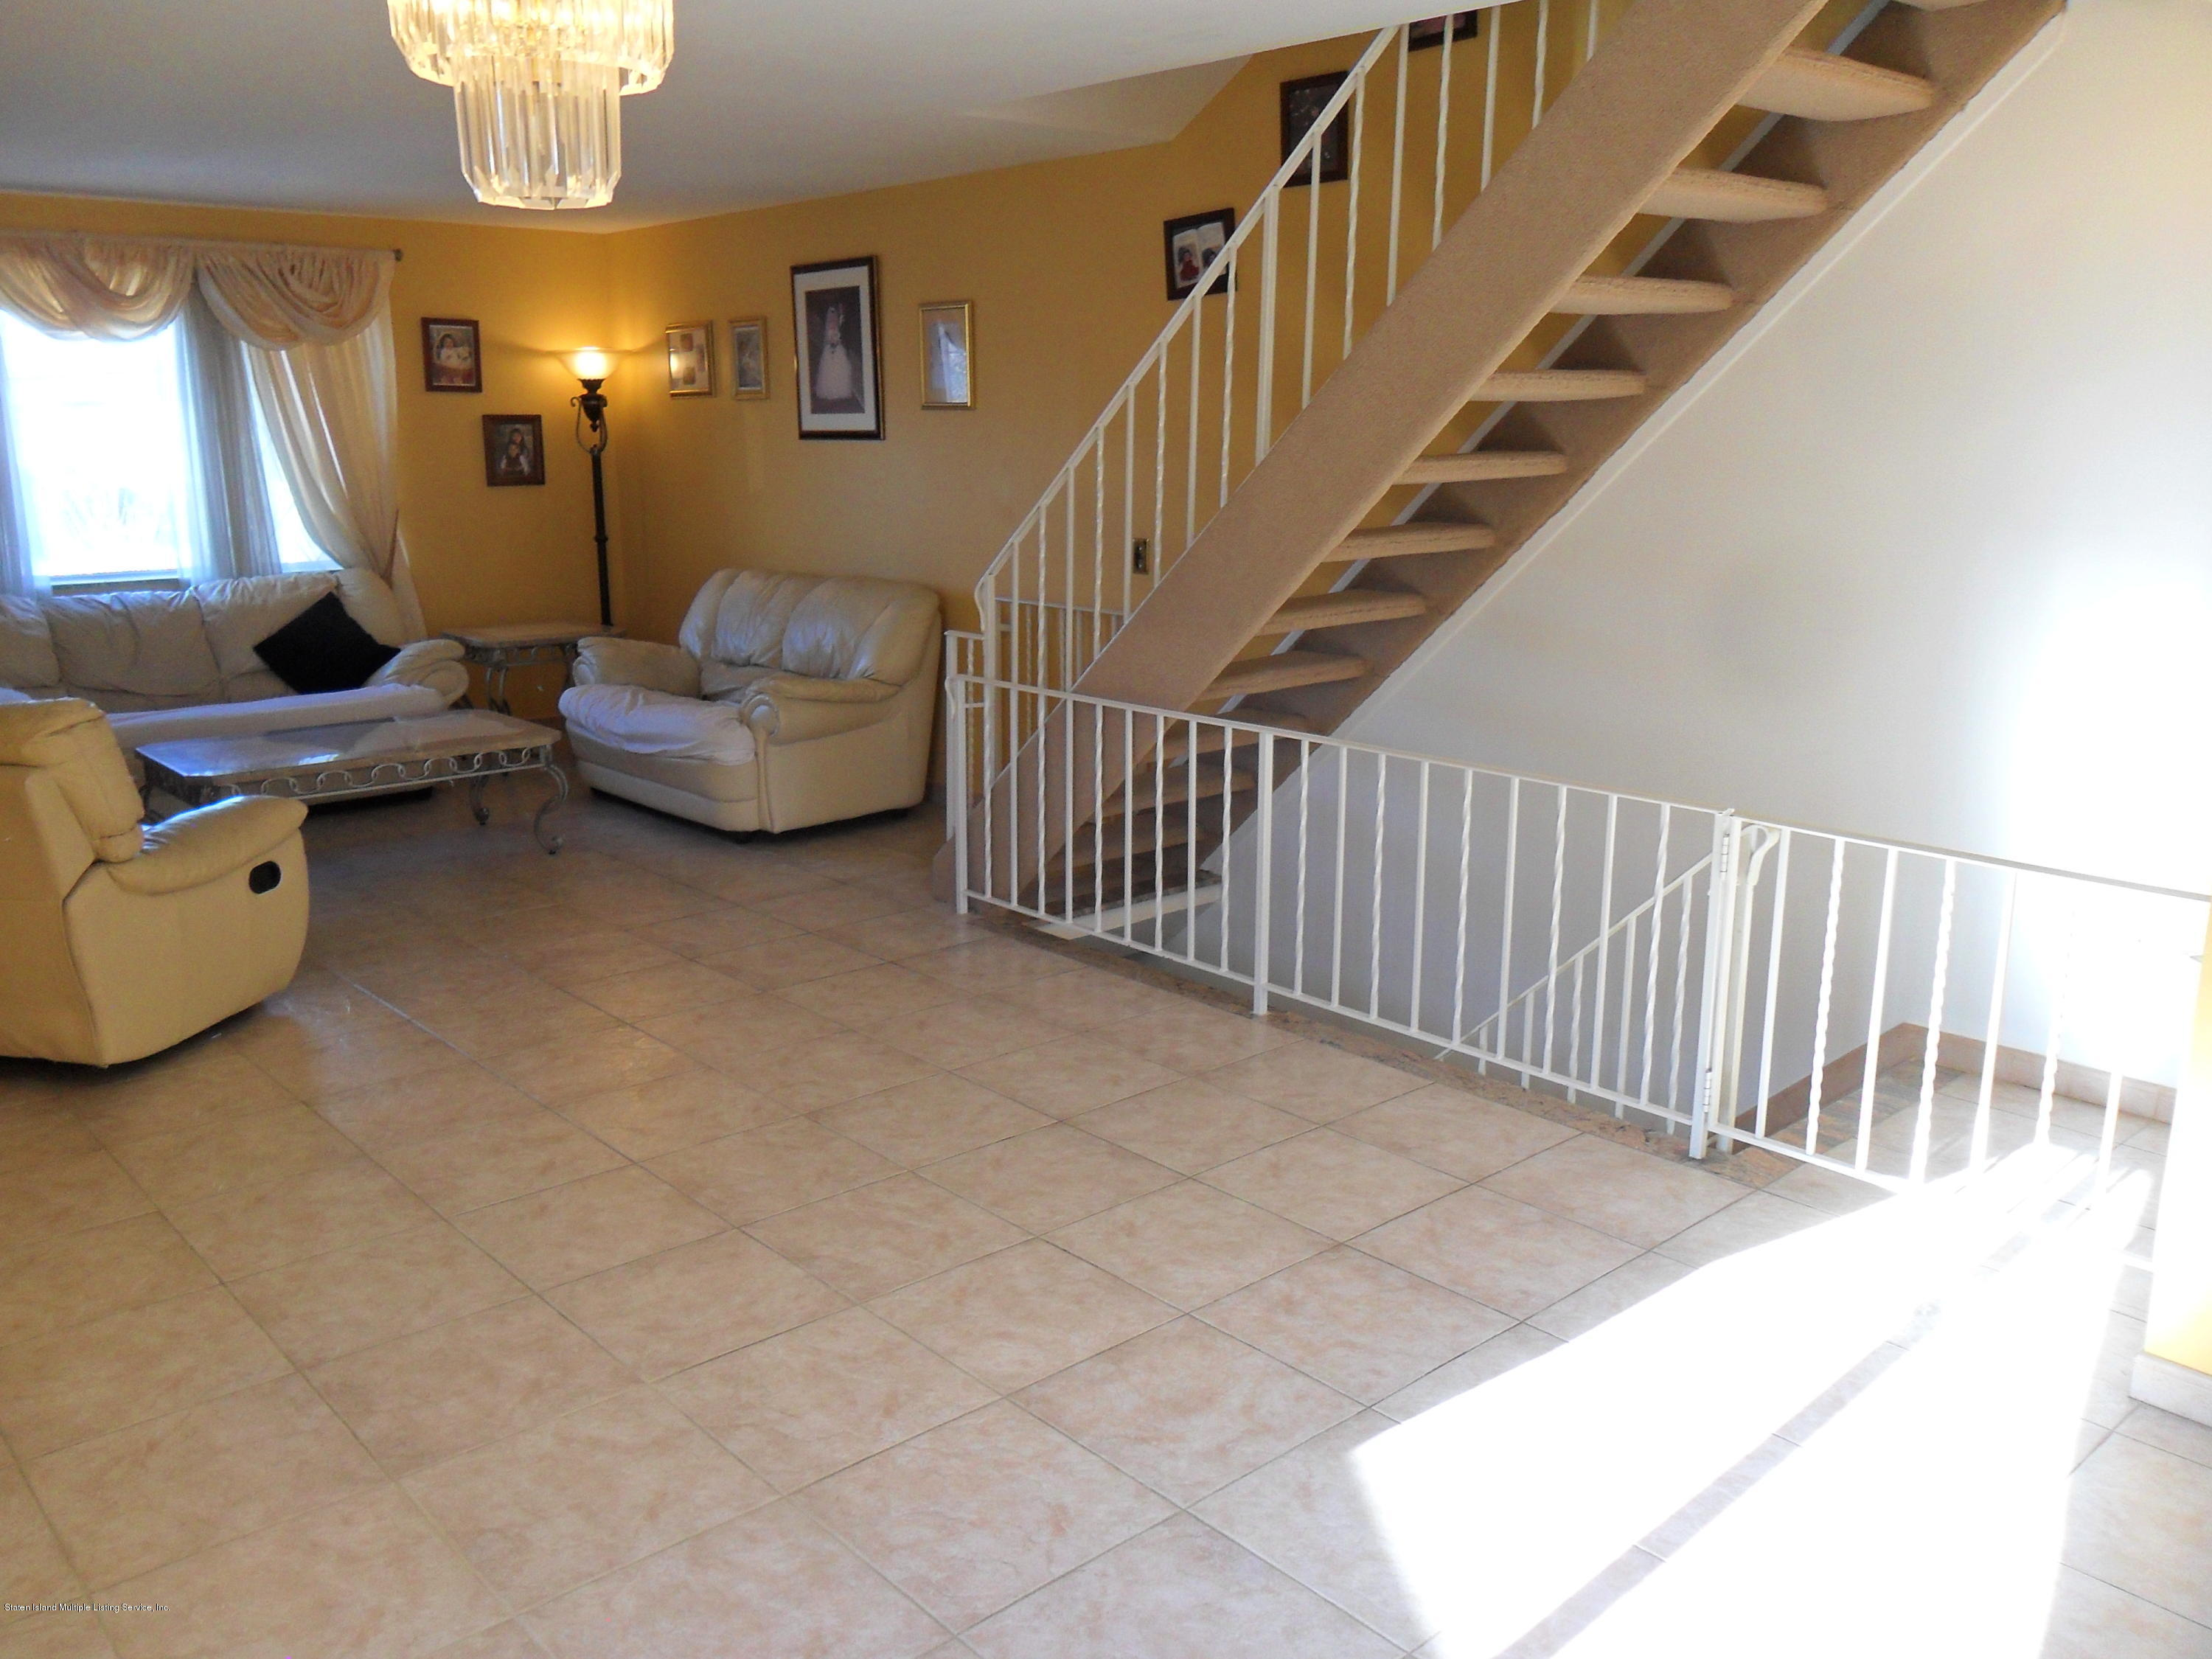 Single Family - Semi-Attached 50 Forest Street  Staten Island, NY 10314, MLS-1127879-7